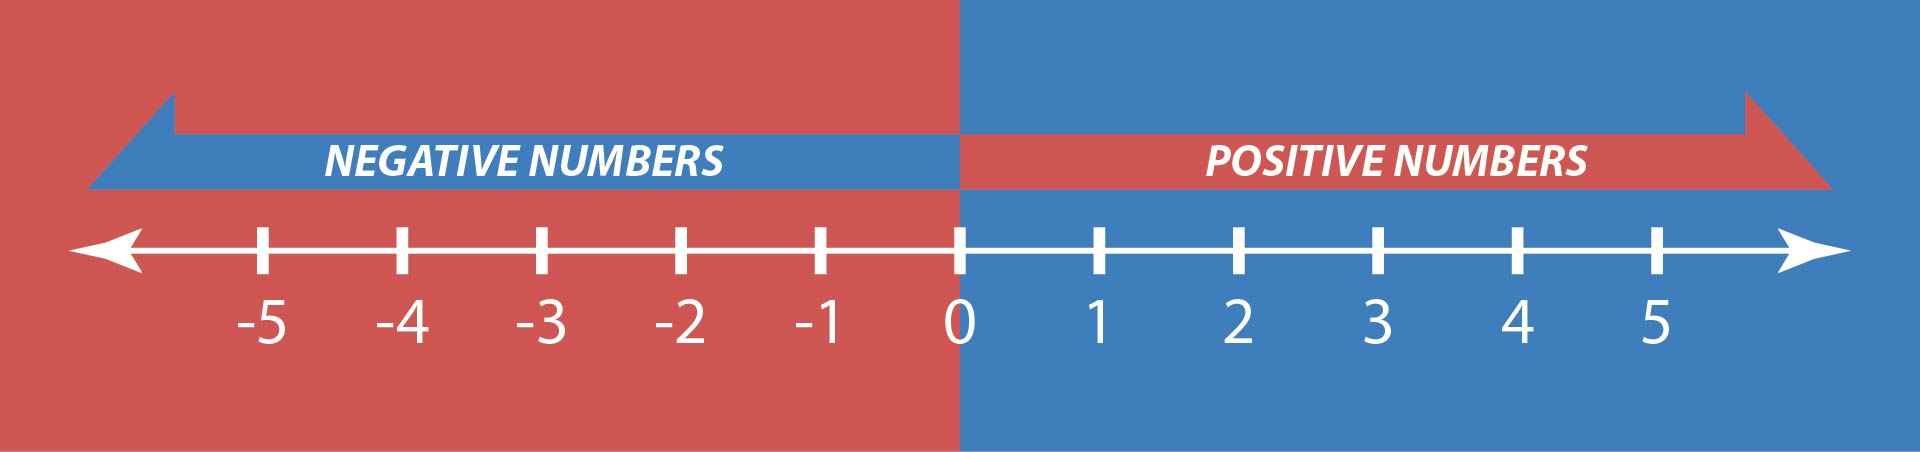 4 Best Images of 20 To Positive And Negative Number Line Printable - Number Line with Negative ...